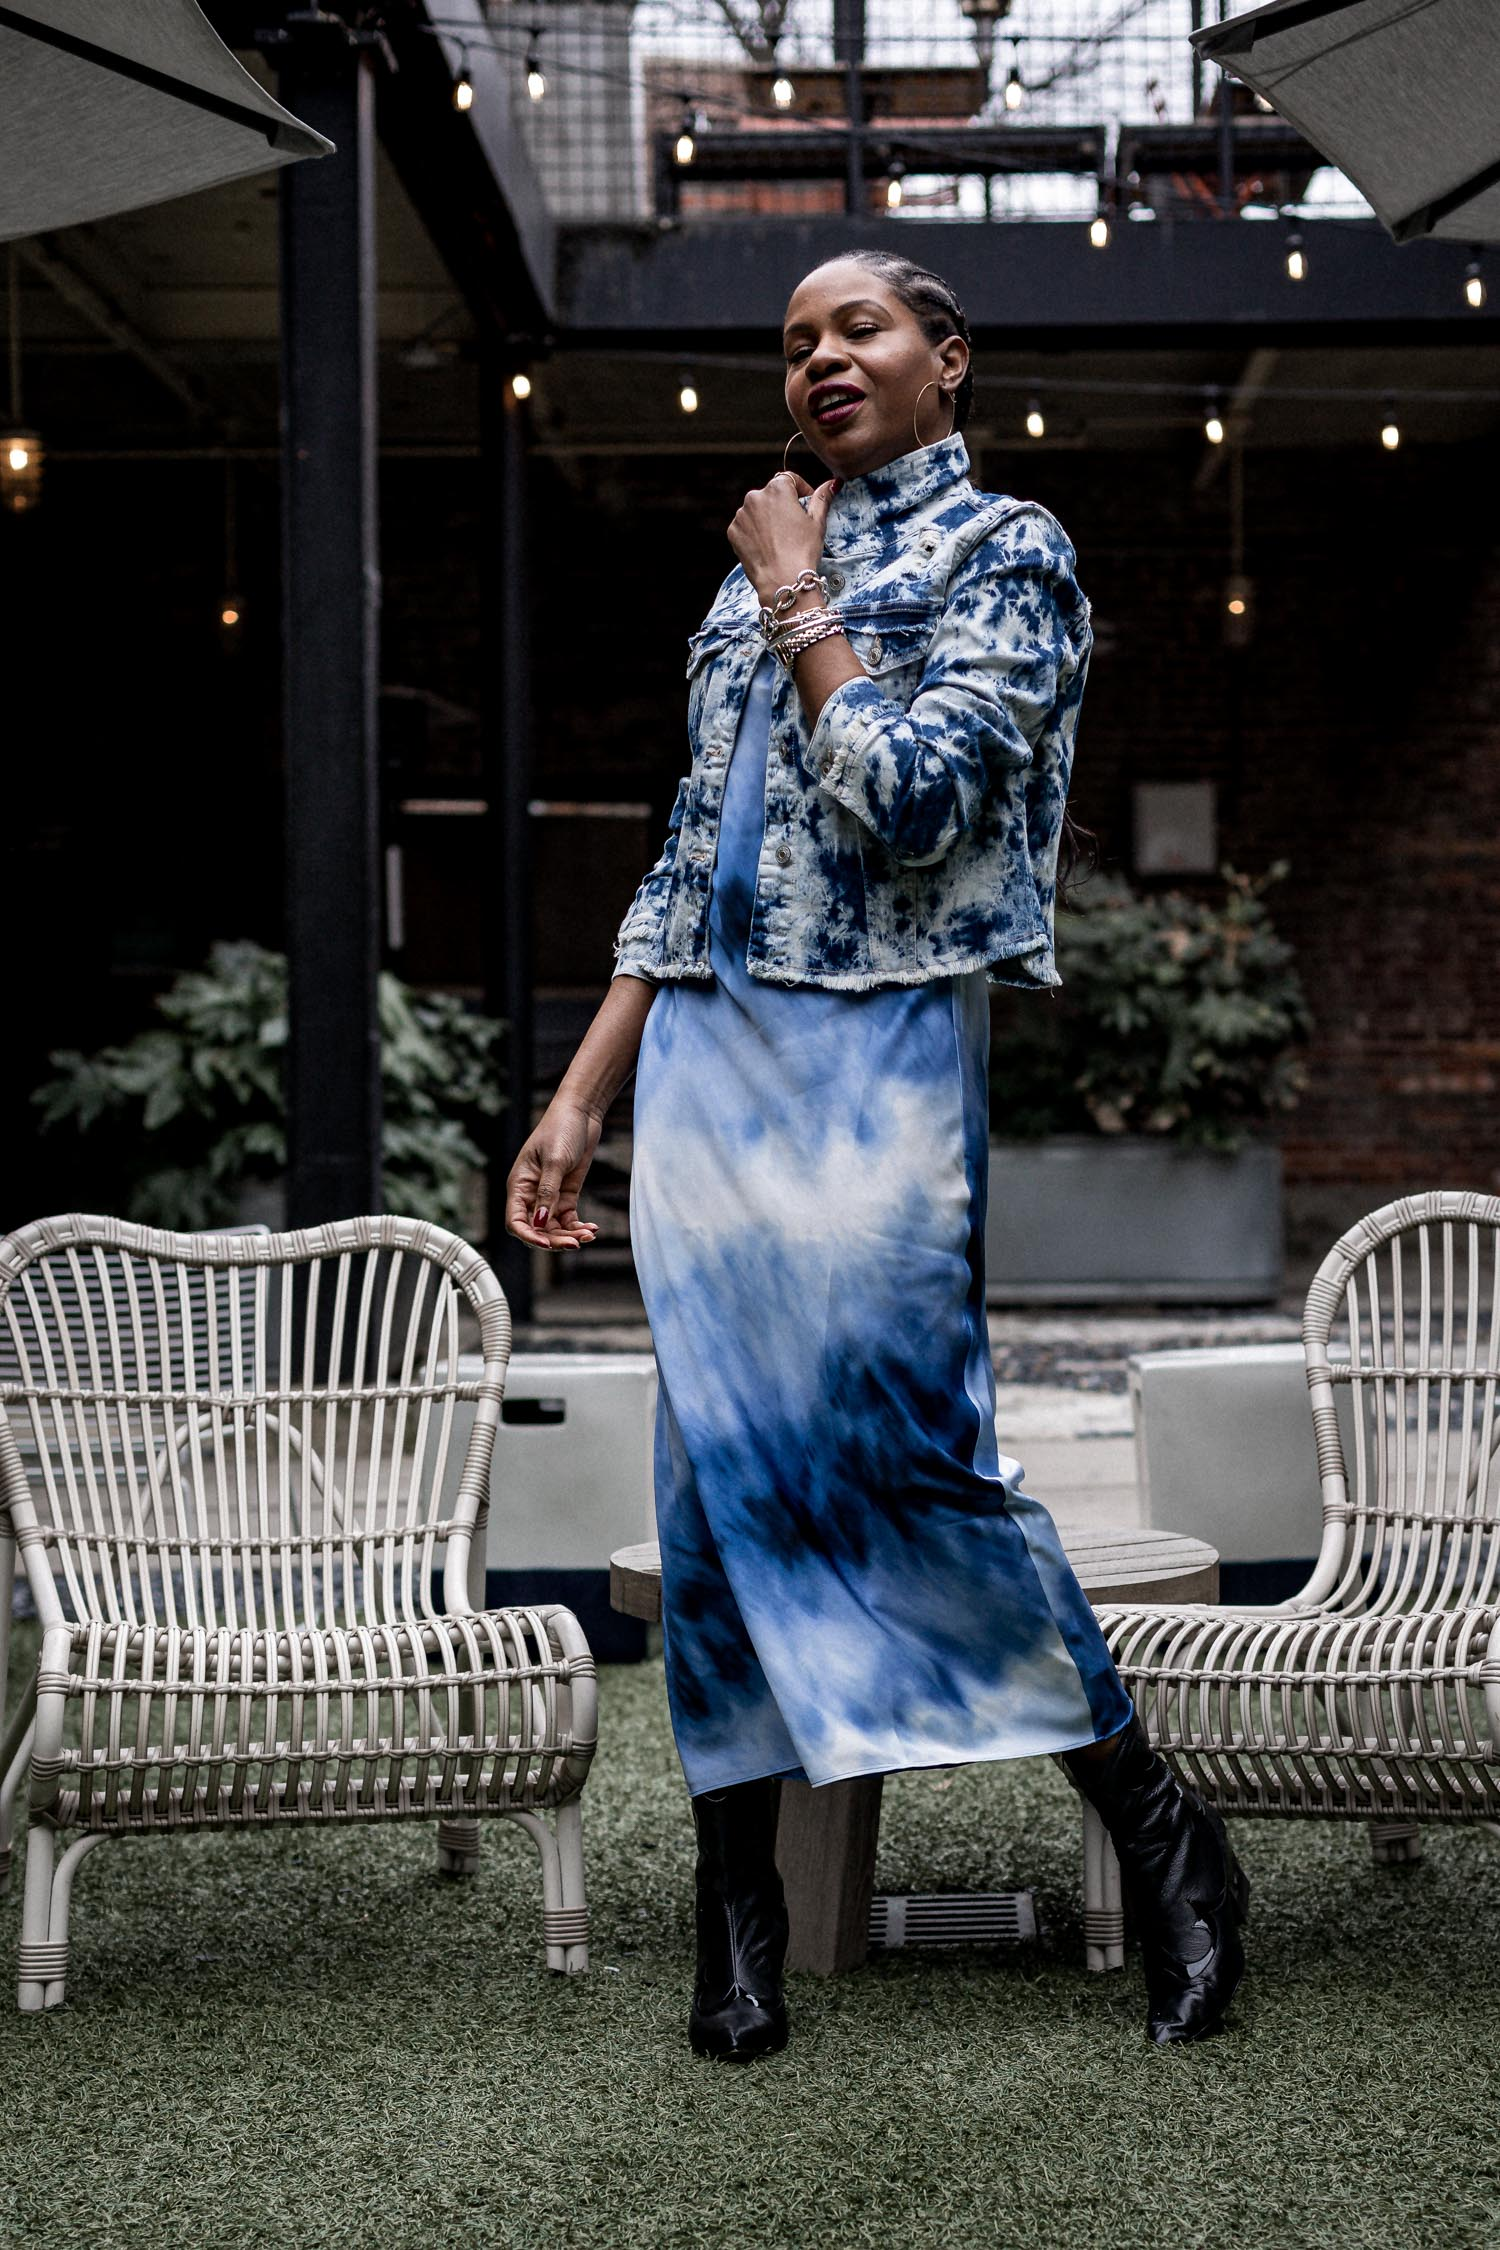 atlanta blogger monica awe-etuk wearing scoop at walmart tye-die slip dress and tye-die denim jacket, tye-die slip dress, how to wear tie-dye in cold weather, 2020 spring trends, what to wear for spring, how to wear spring trends in cold weather, spring trends to buy in 2020, pre-spring, transitional wear for spring , spring fashion , walmart, scoop, scoop at walmart, denim jacket, how to wear a denim jacket with a slip dress, how to style a slip dress with boots